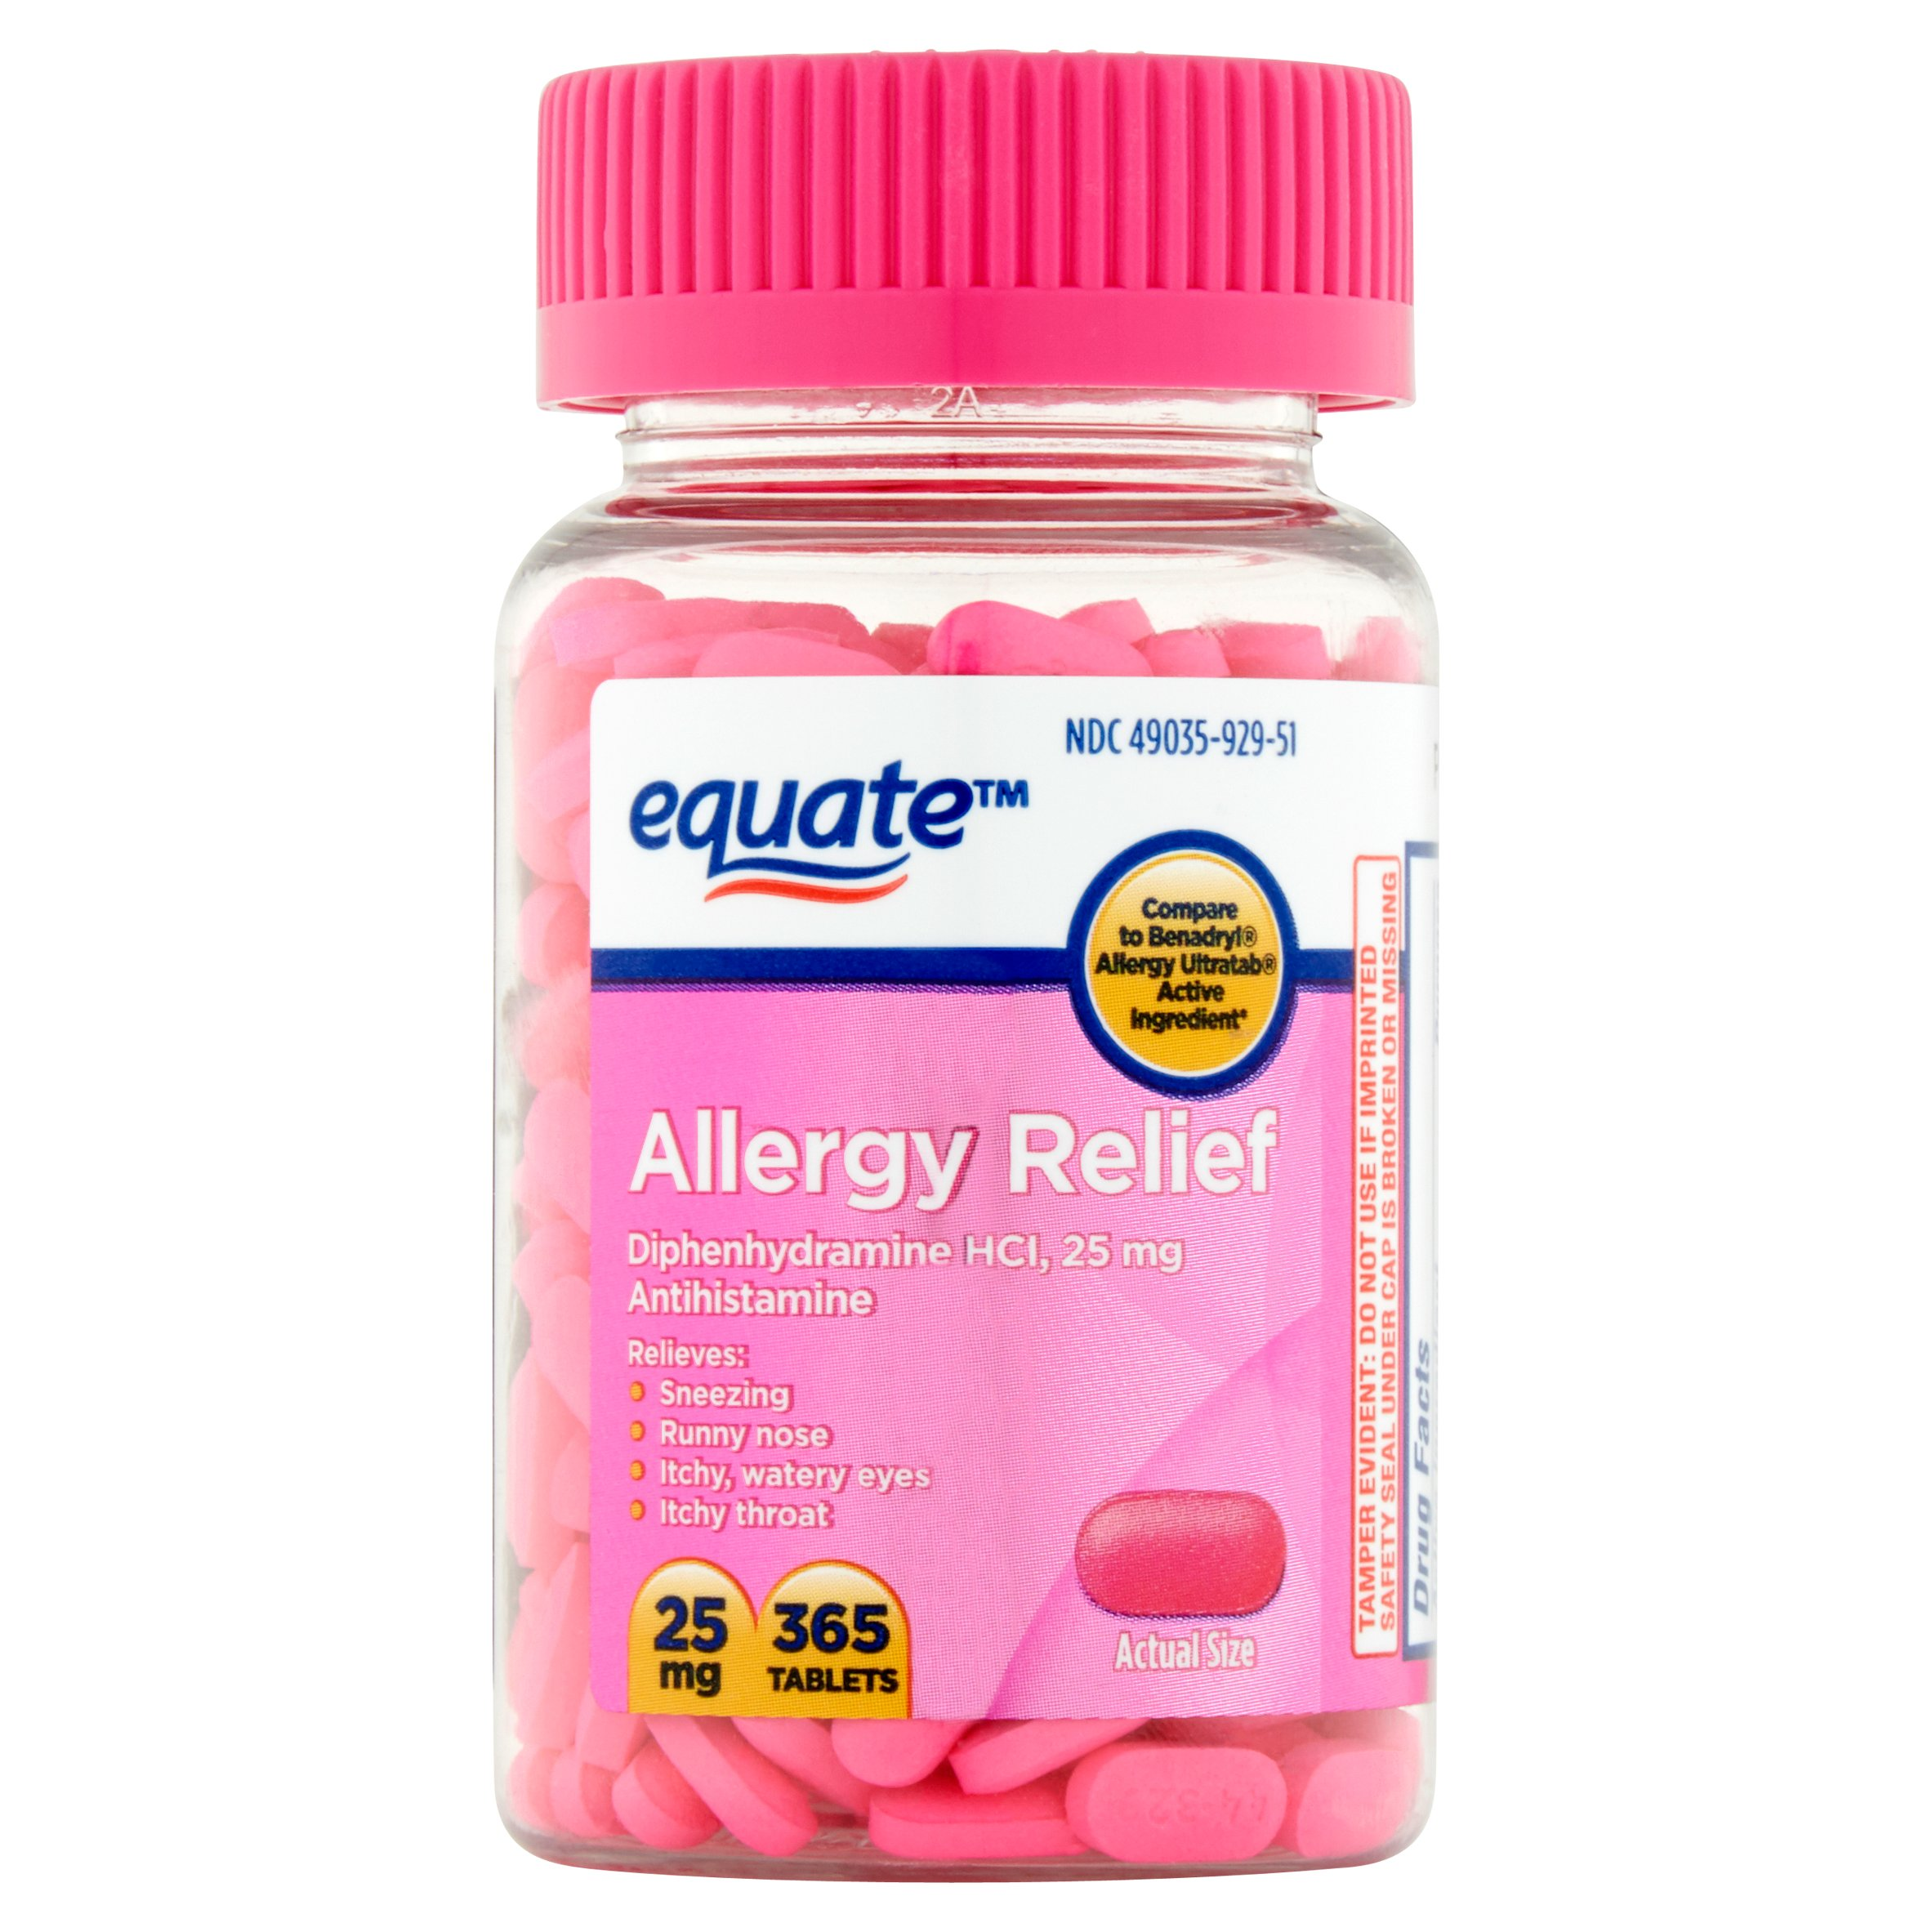 Equate Allergy Relief Diphenhydramine Tablets, 25 mg, 365 Ct - Walmart.com | Tuggl